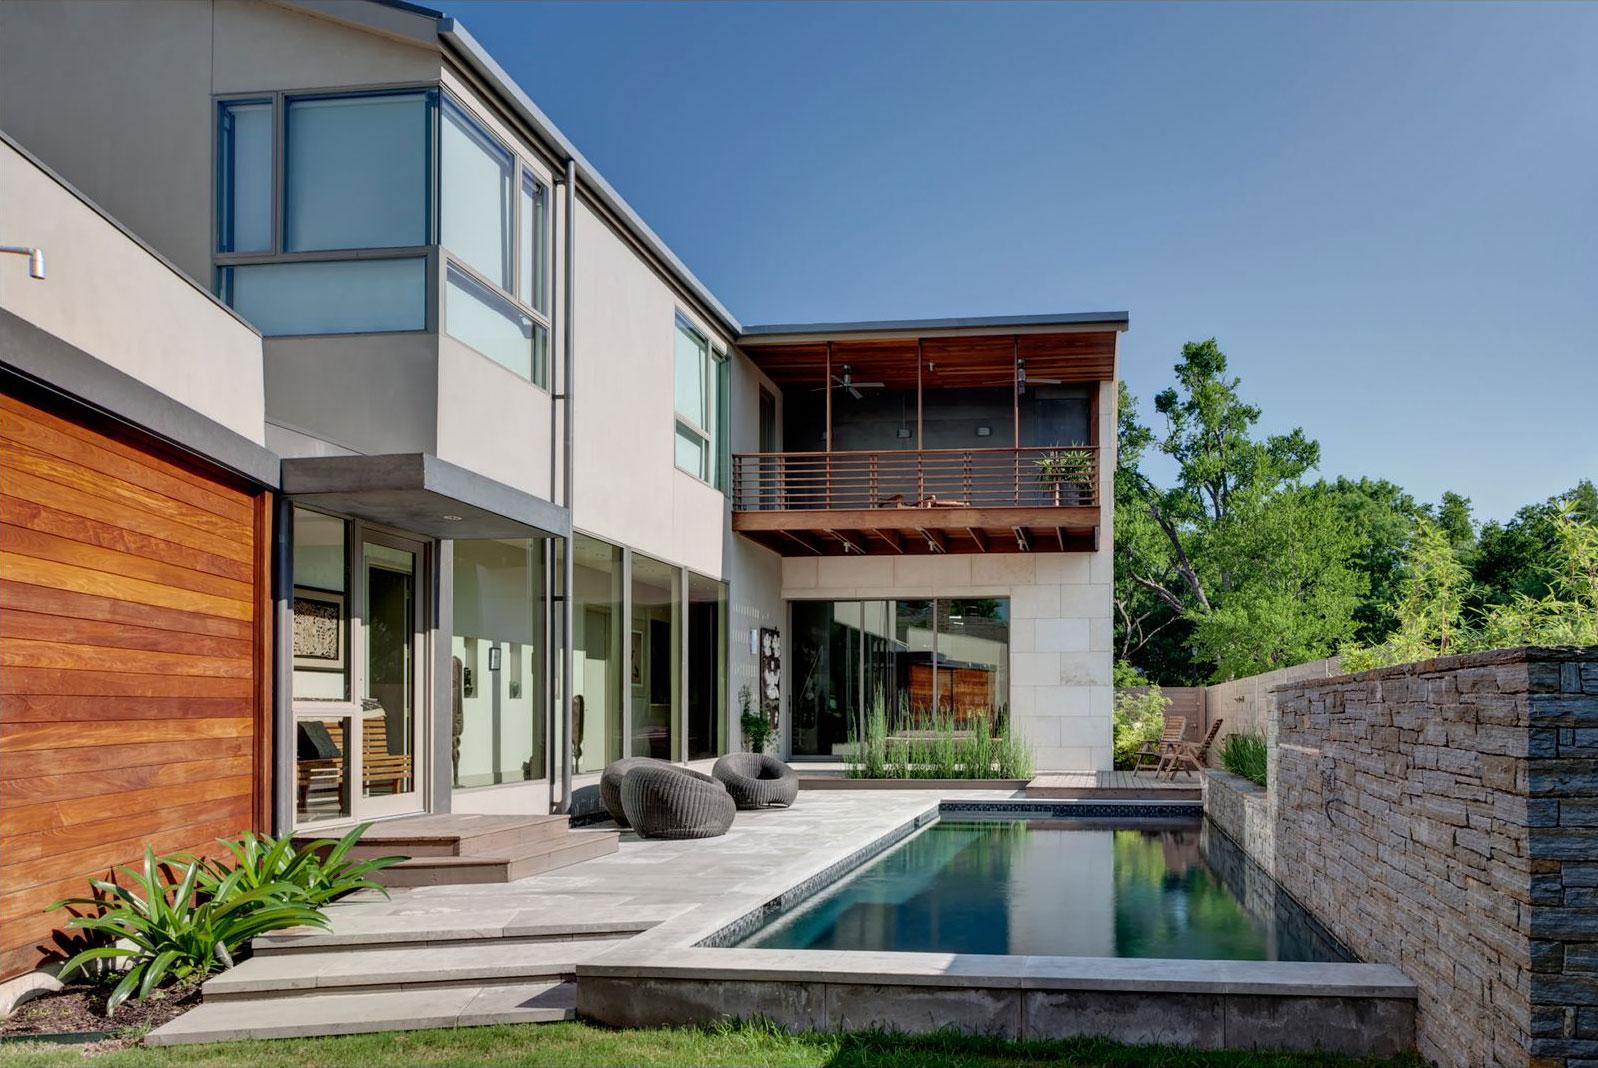 of Three Rooms by Marc McCollom Architect